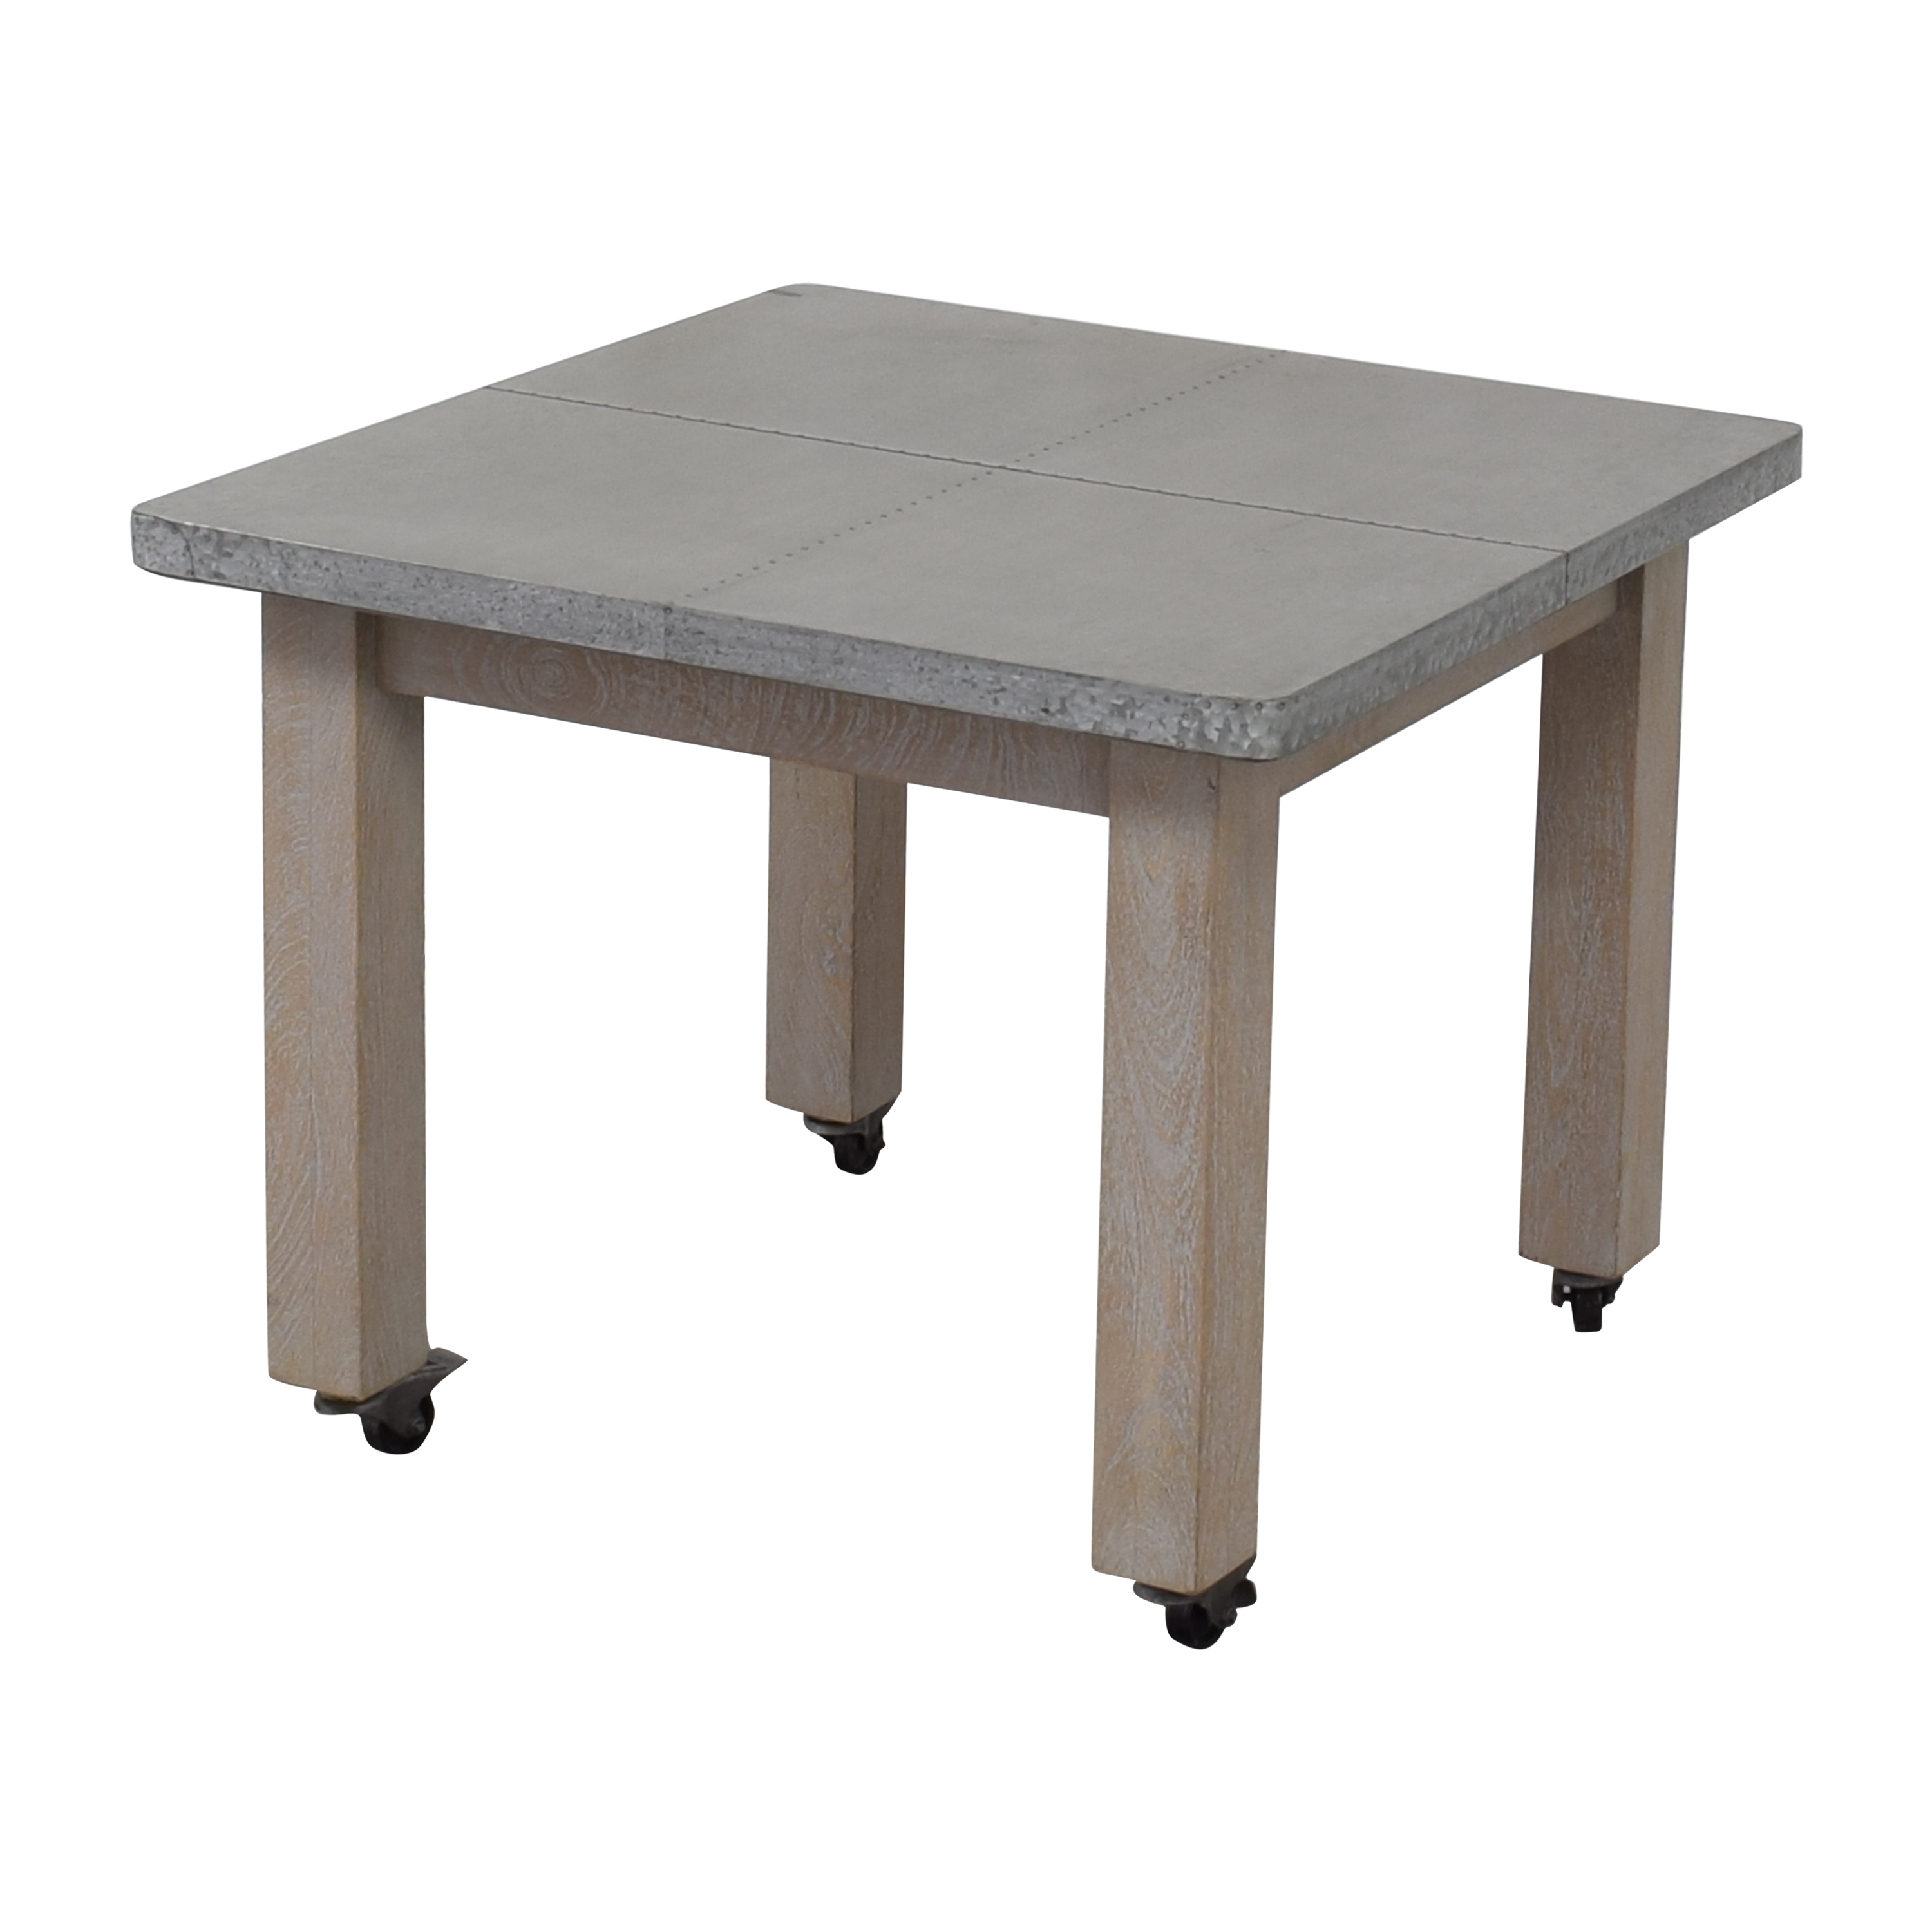 RH Baby & Child RH Baby & Child Vintage Schoolhouse Square Play Table coupon